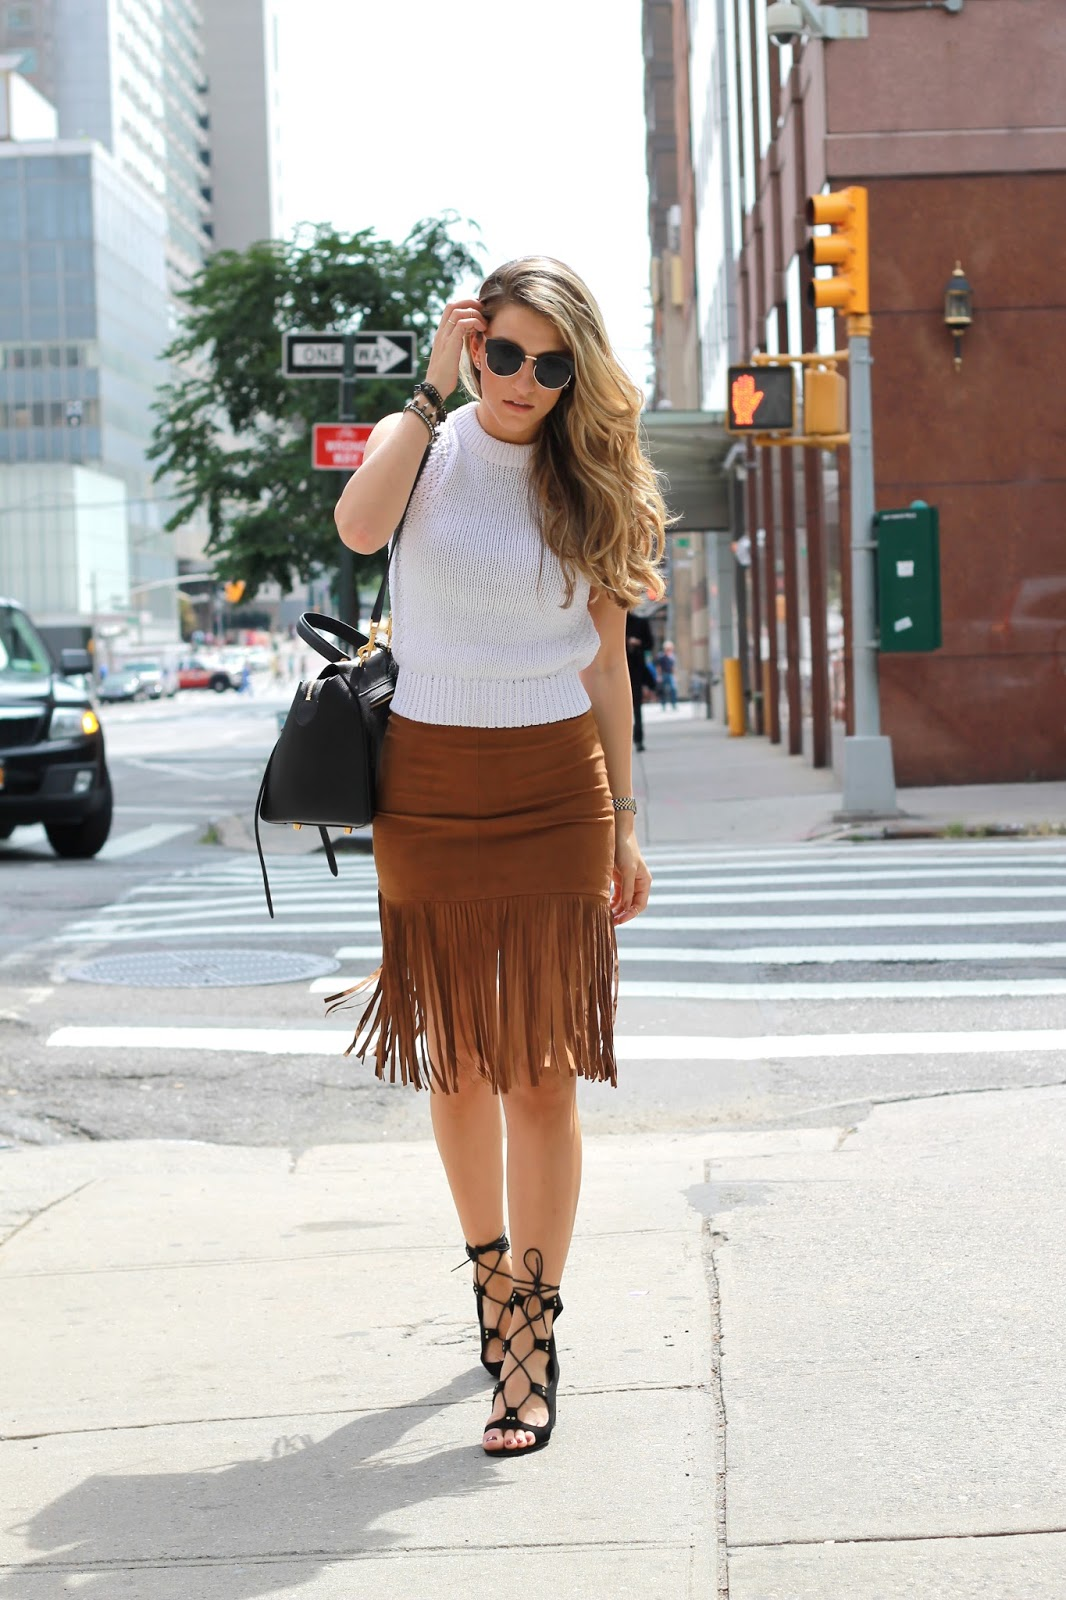 camel fringe skirt, fringe skirt outfits, dressed for dreams